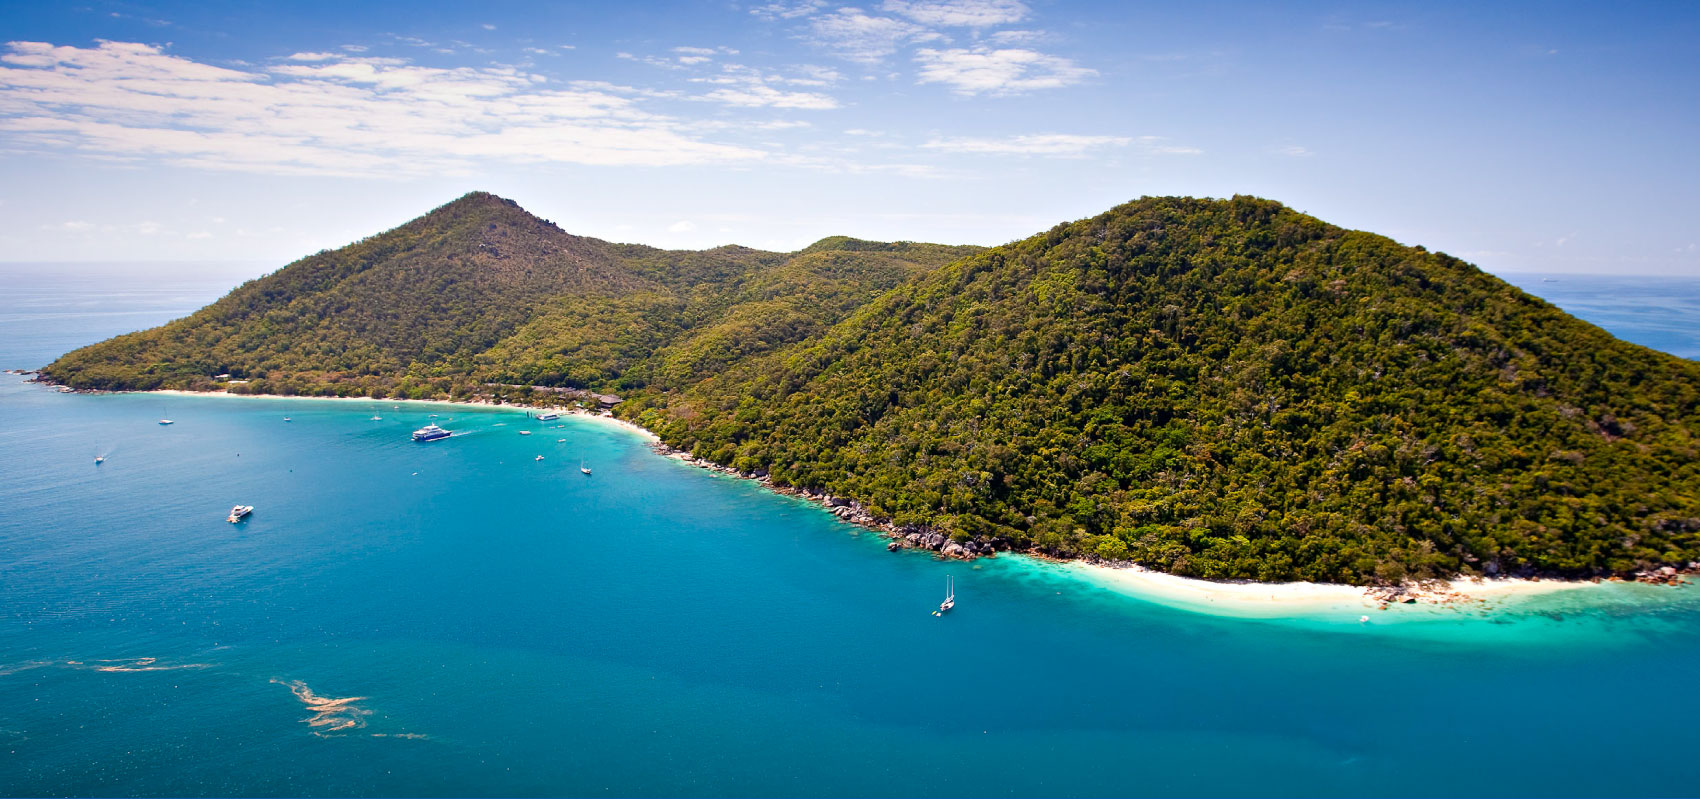 Fitzroy Island Resort | Official Website of Fitzroy Island on australia golf map, australia modern map, australia cool map, australia continental map, australia surf map, australia hawaii map, australia red map, australia yellow map, australia wine map, australia landscape map, australia travel map, australia country map, australia mountains map, australia vintage map, australia rainforest map, australia beach map, australia water map, australia forest map, australia desert map, australia sea map,